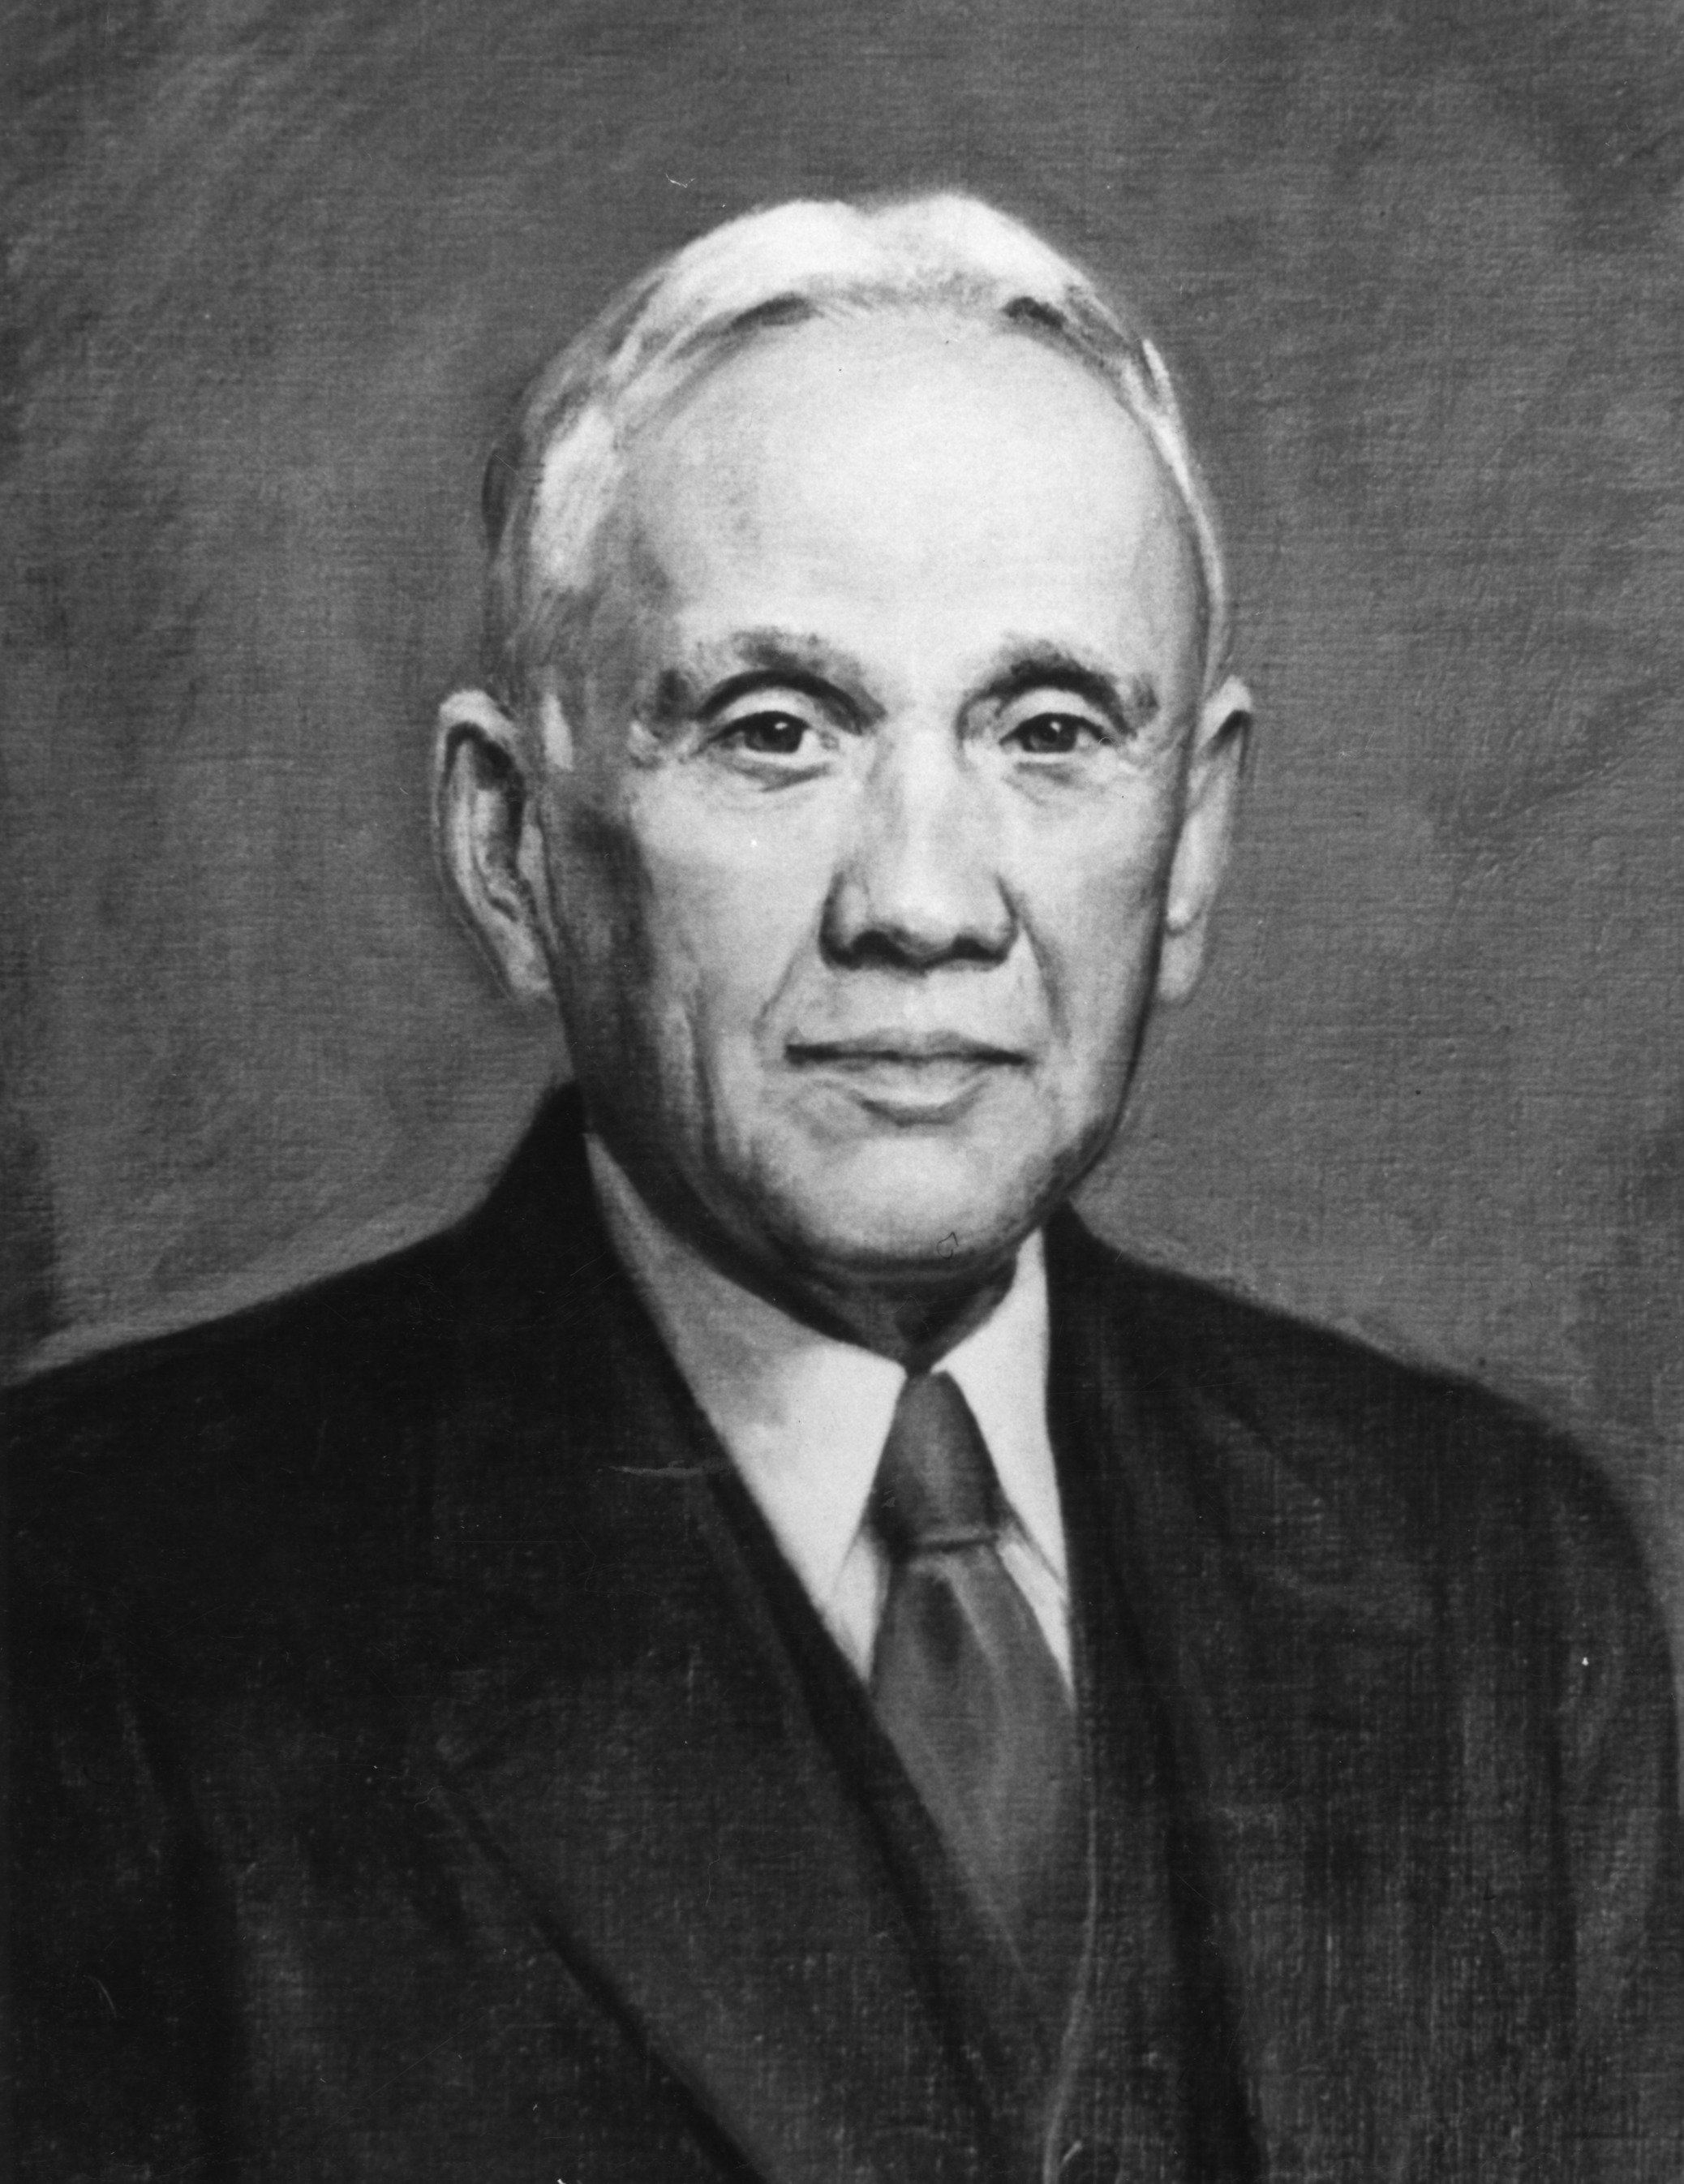 Portrait of Benjamin W. Kilgore, director of research 1912-1924, director of extension 1914-1924, dean of agriculture 1923-1925